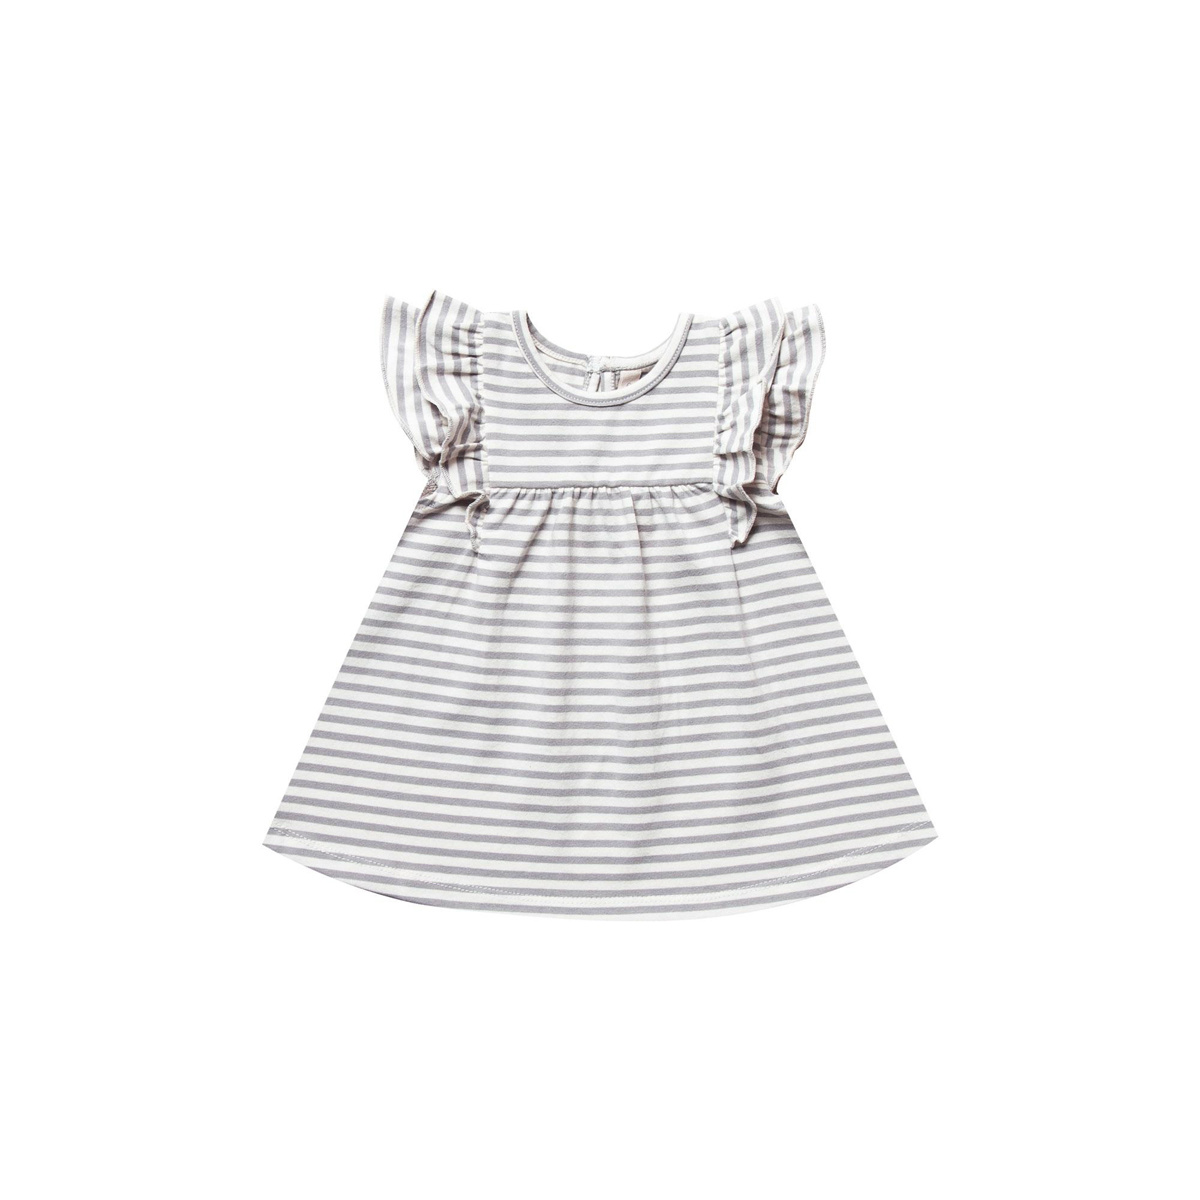 Quincy Mae Quincy Mae - Flutter Dress